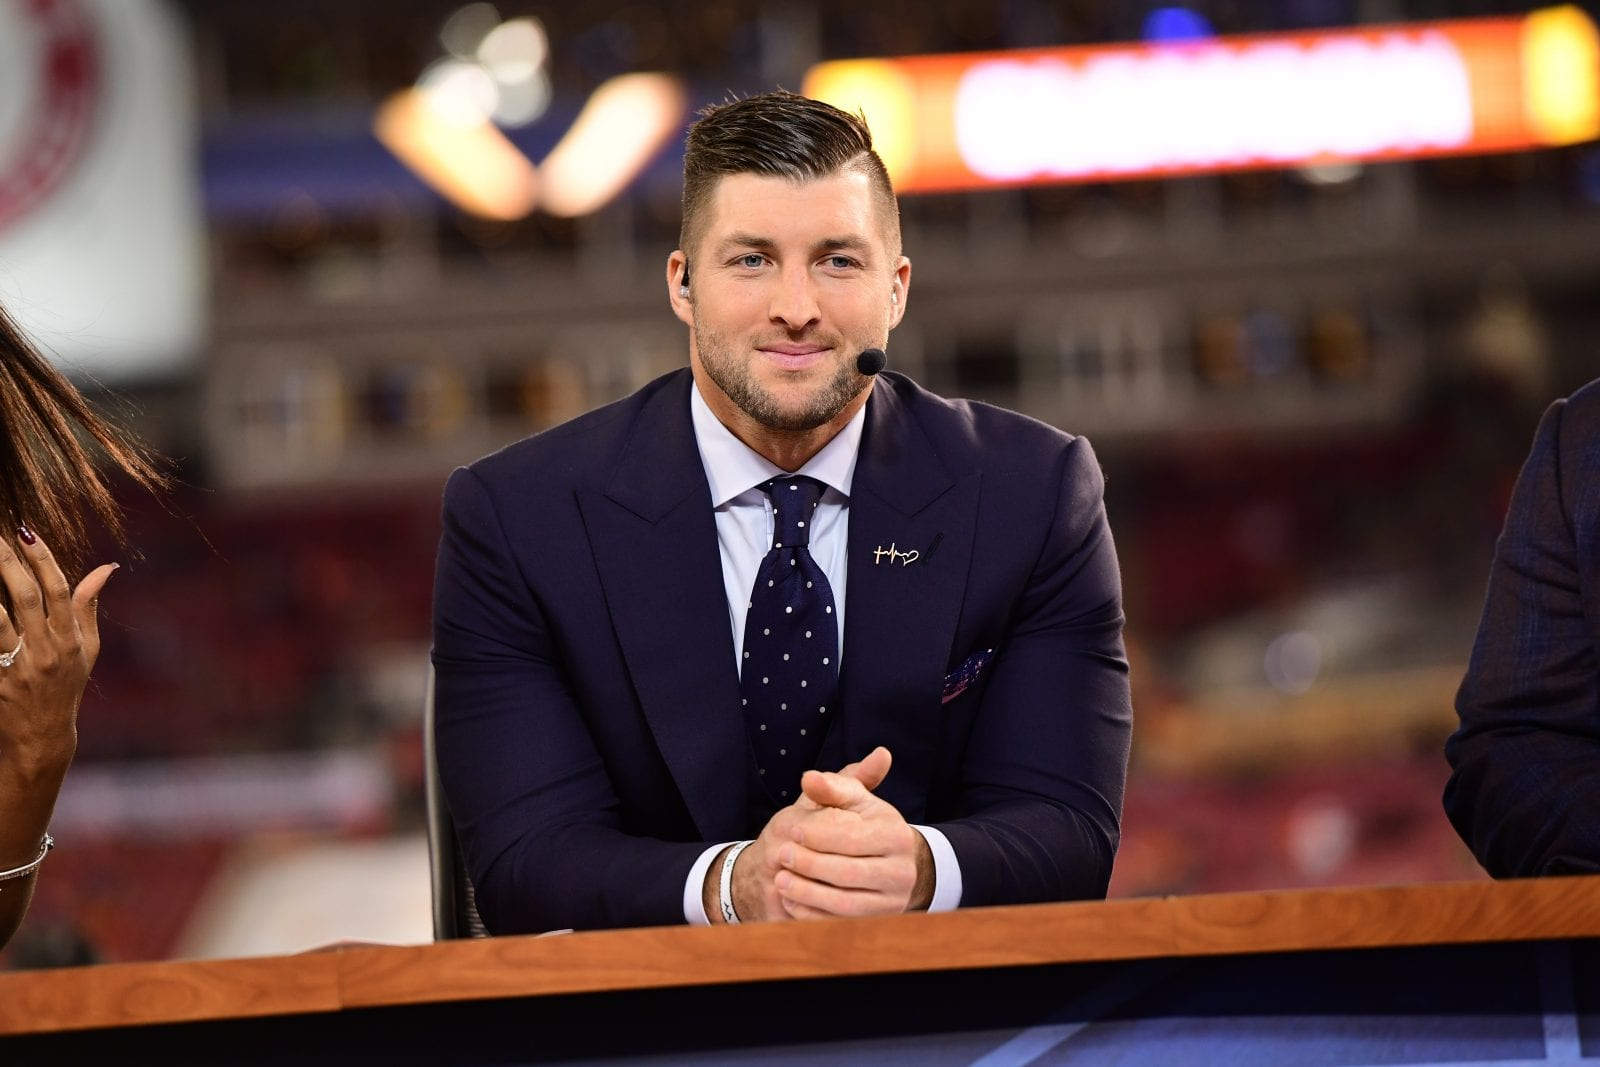 A Brief Story of the Career Life of Tim Tebow